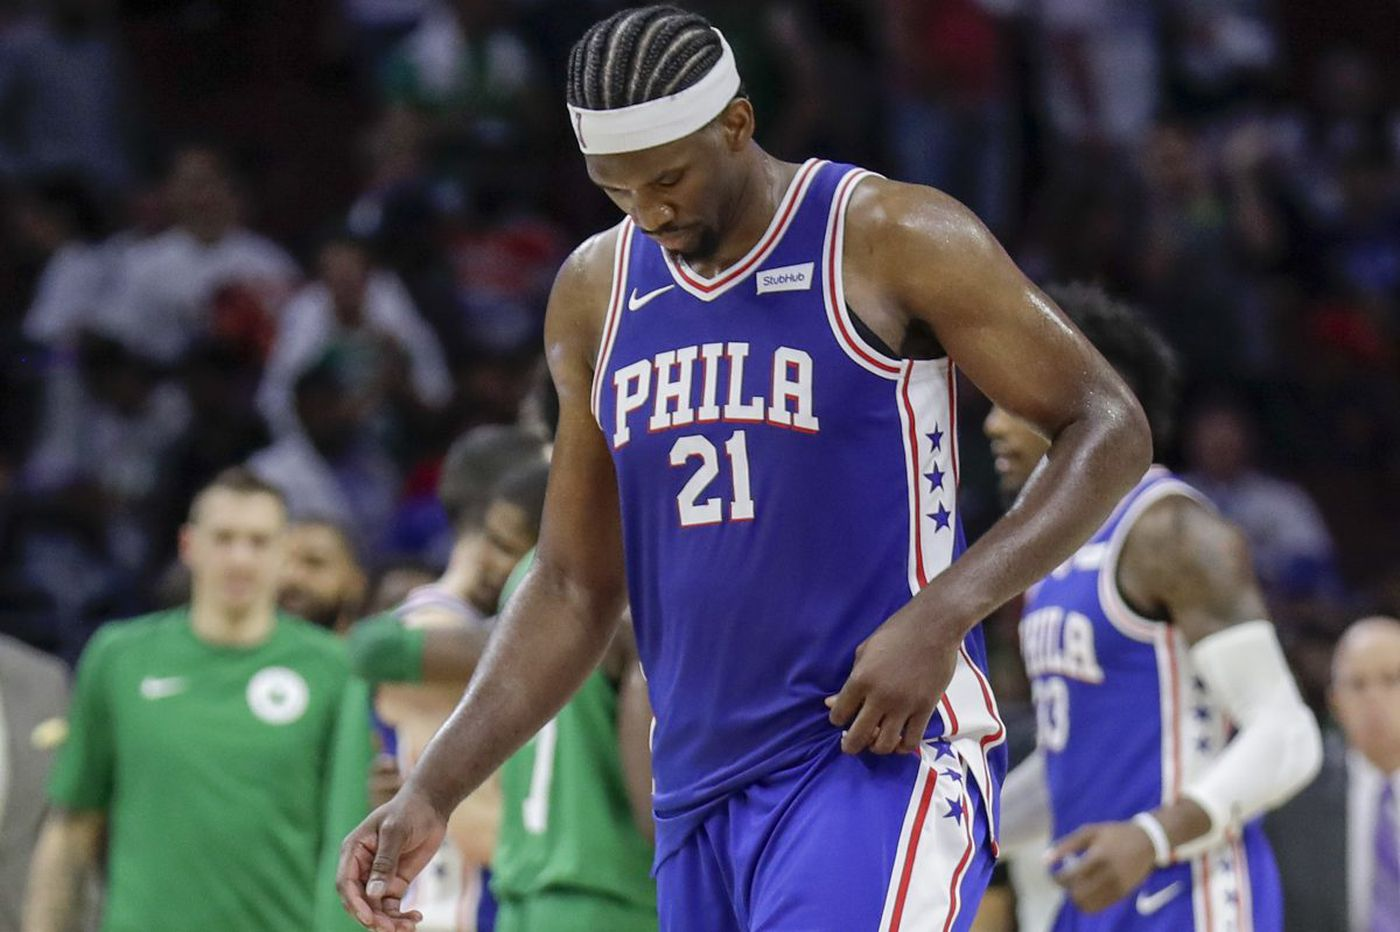 Sixers' Richaun Holmes: Joel Embiid 'looked pretty good' at shootaround before Raptors game